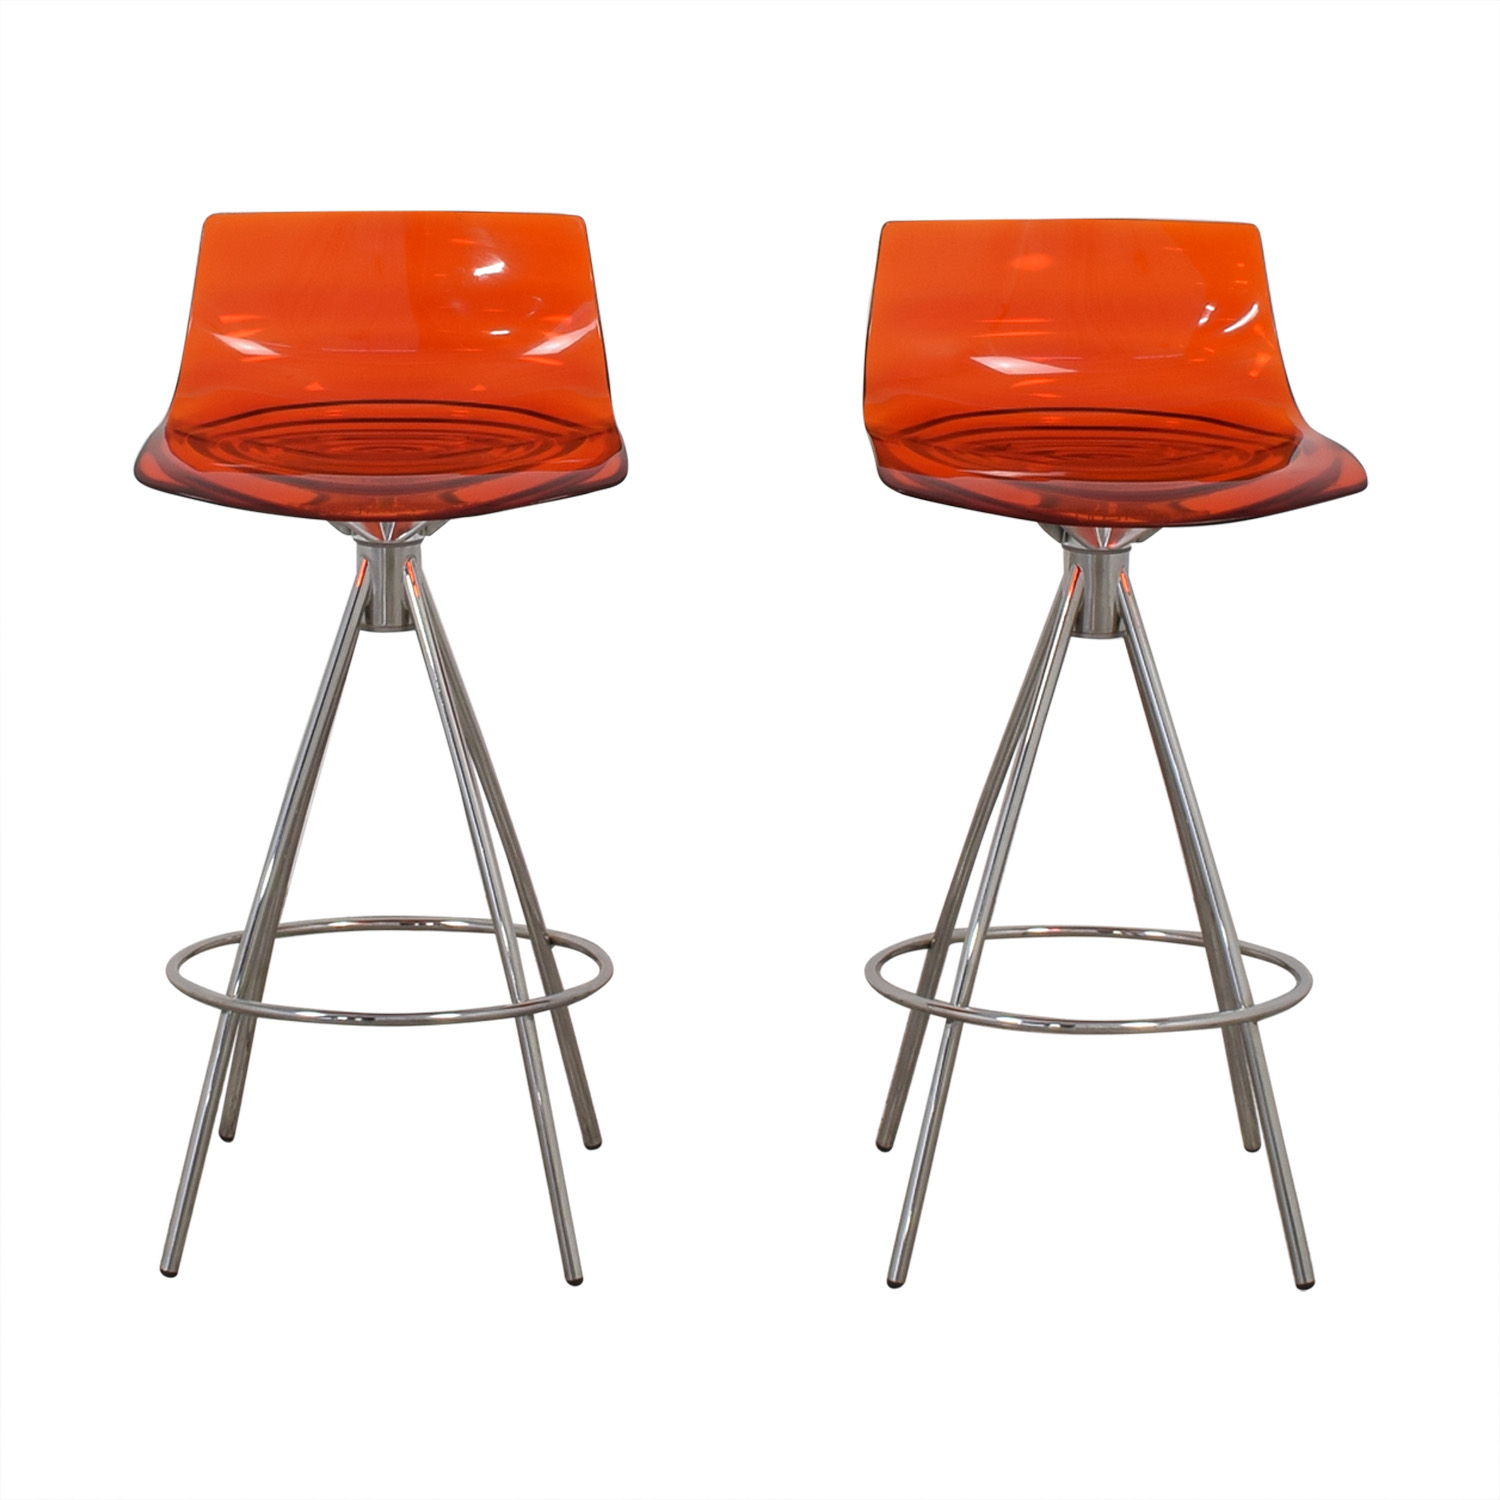 Calligaris l'Eau Counter Stools / Chairs